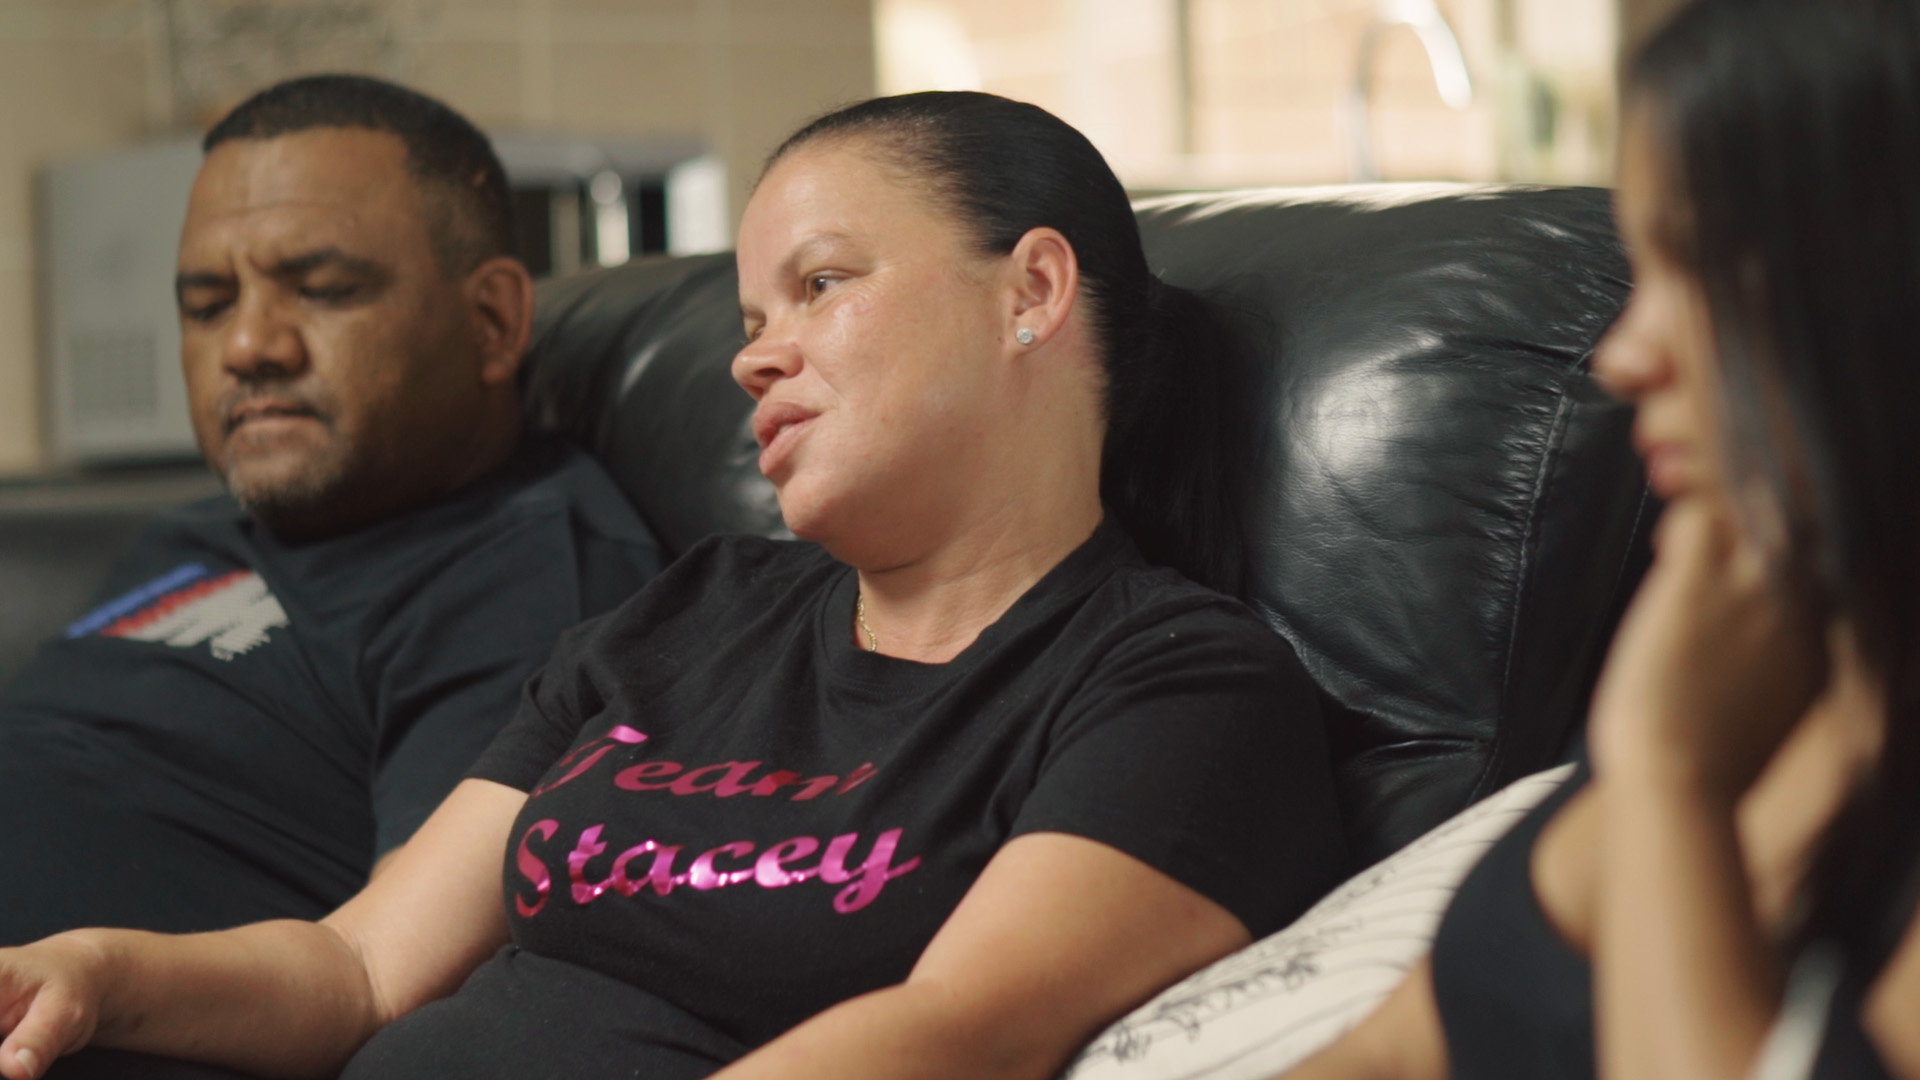 LIZEL MAY, HER HUSBAND (LEFT) AND STACEY-LEE MAY (RIGHT). CREDIT: LURE